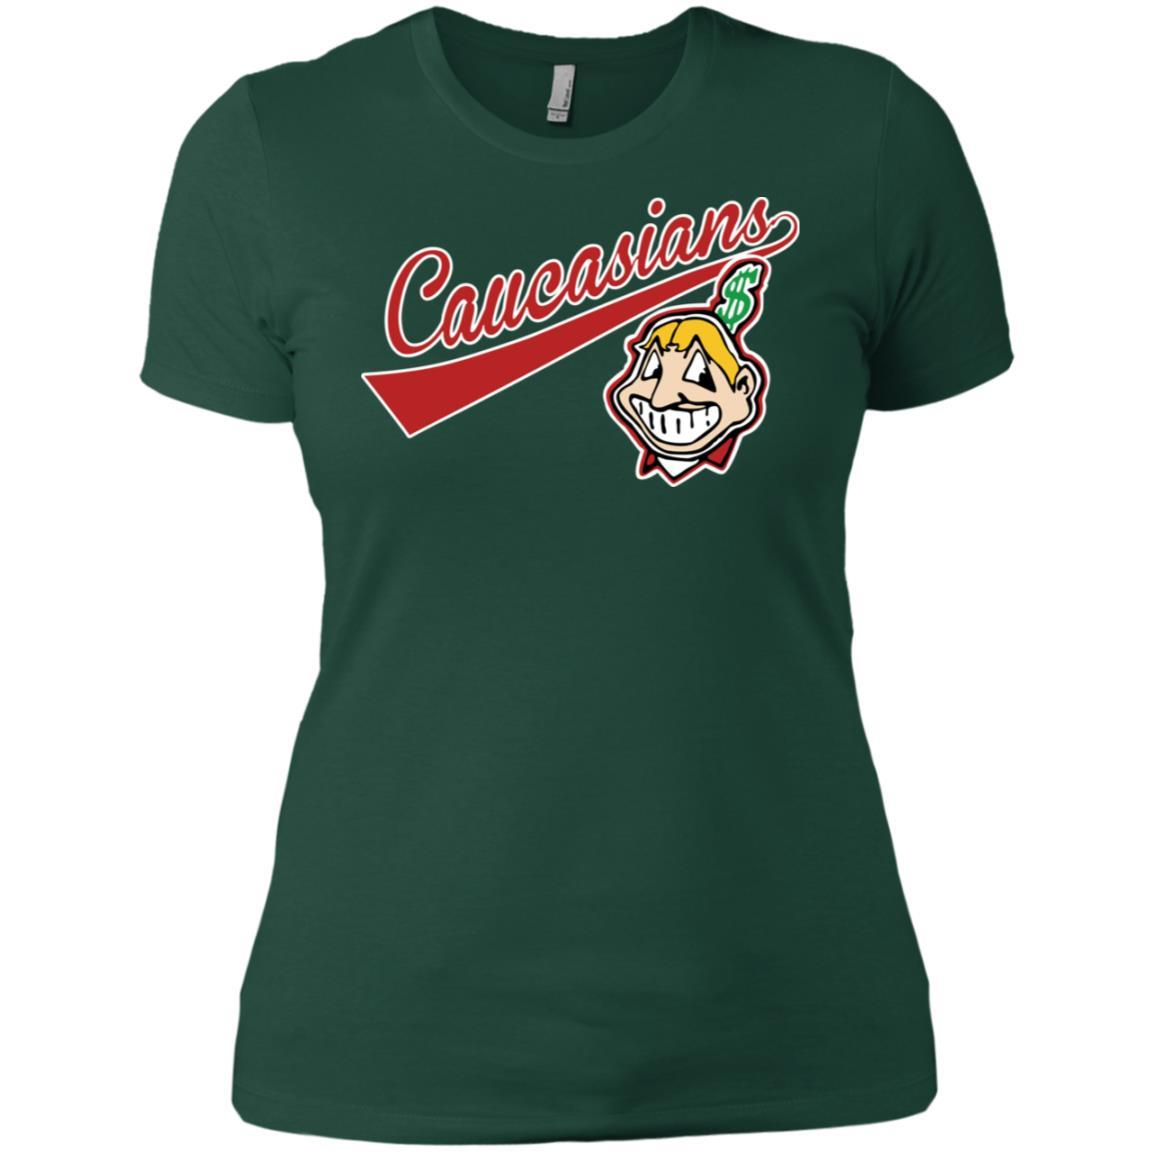 Cleveland Caucasians Native Go Indians - Ladies' Boyfriend T-Shirt Forest Green / 3XL